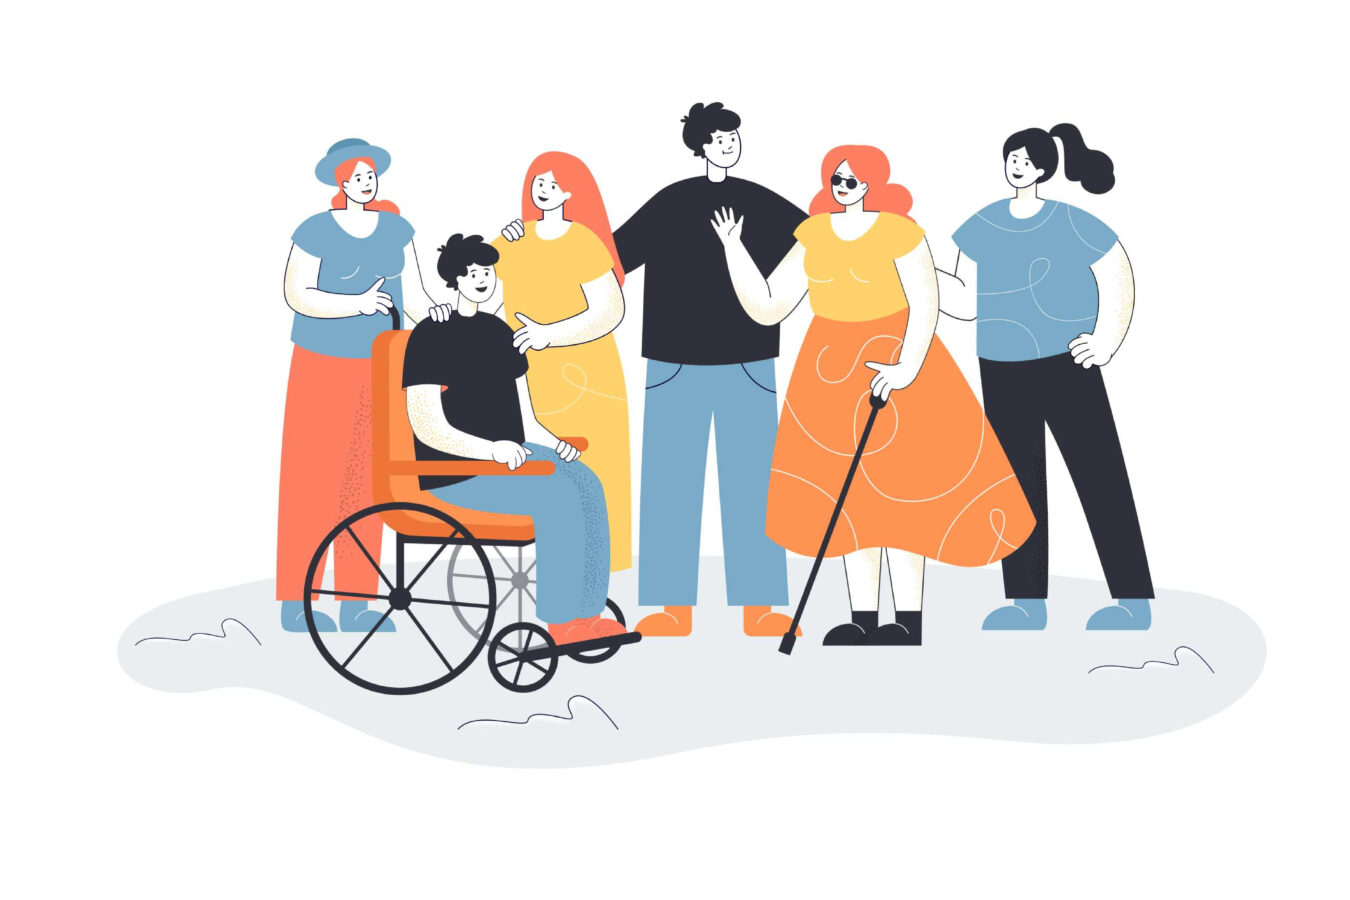 An illustration shows people with different needs and demonstrates the importance of raising disability awareness.